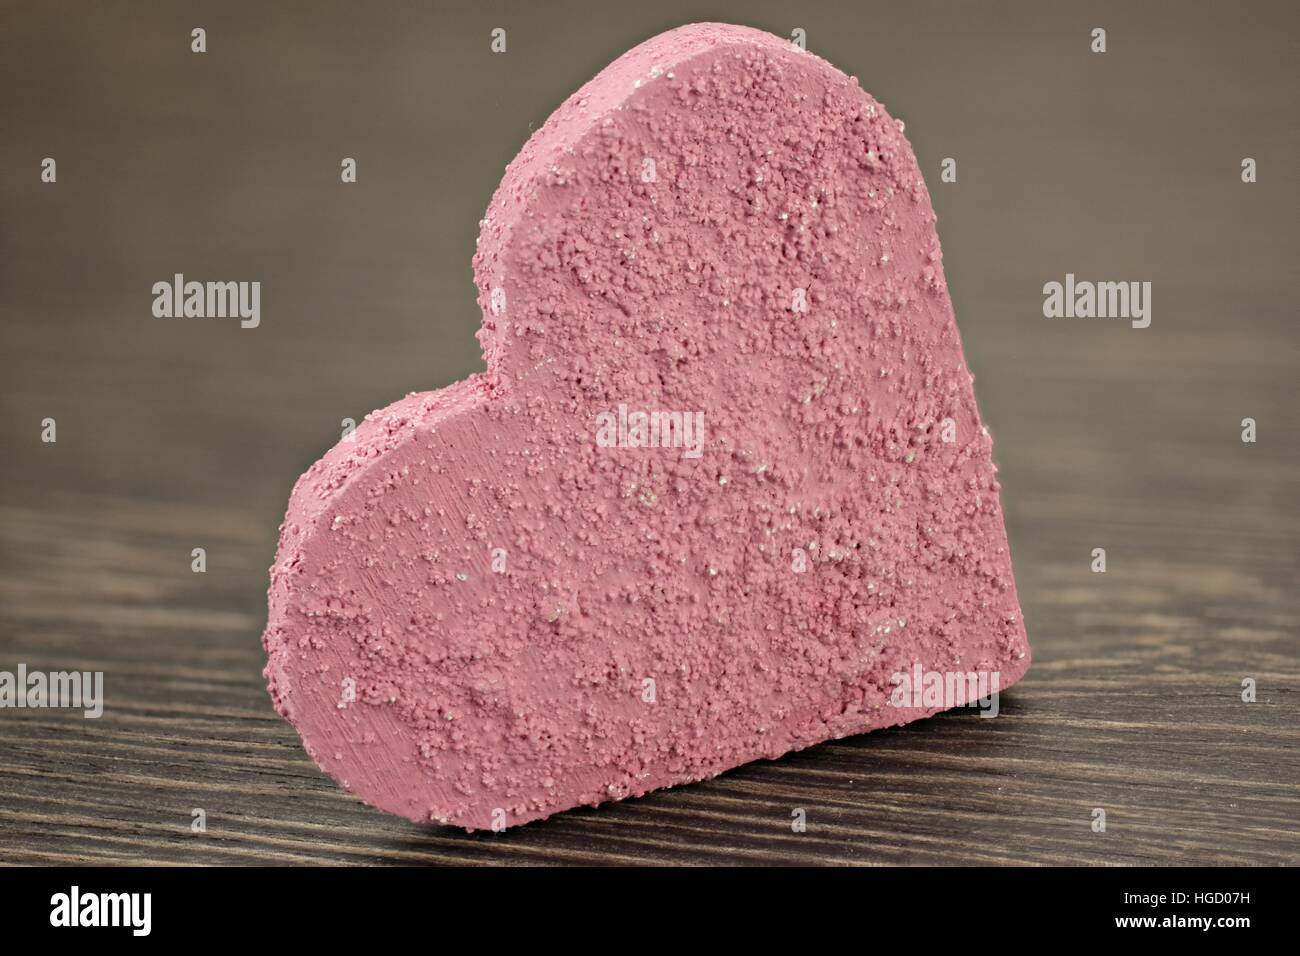 Heart Background Meaning Valentine Day Stock Photos & Heart ...